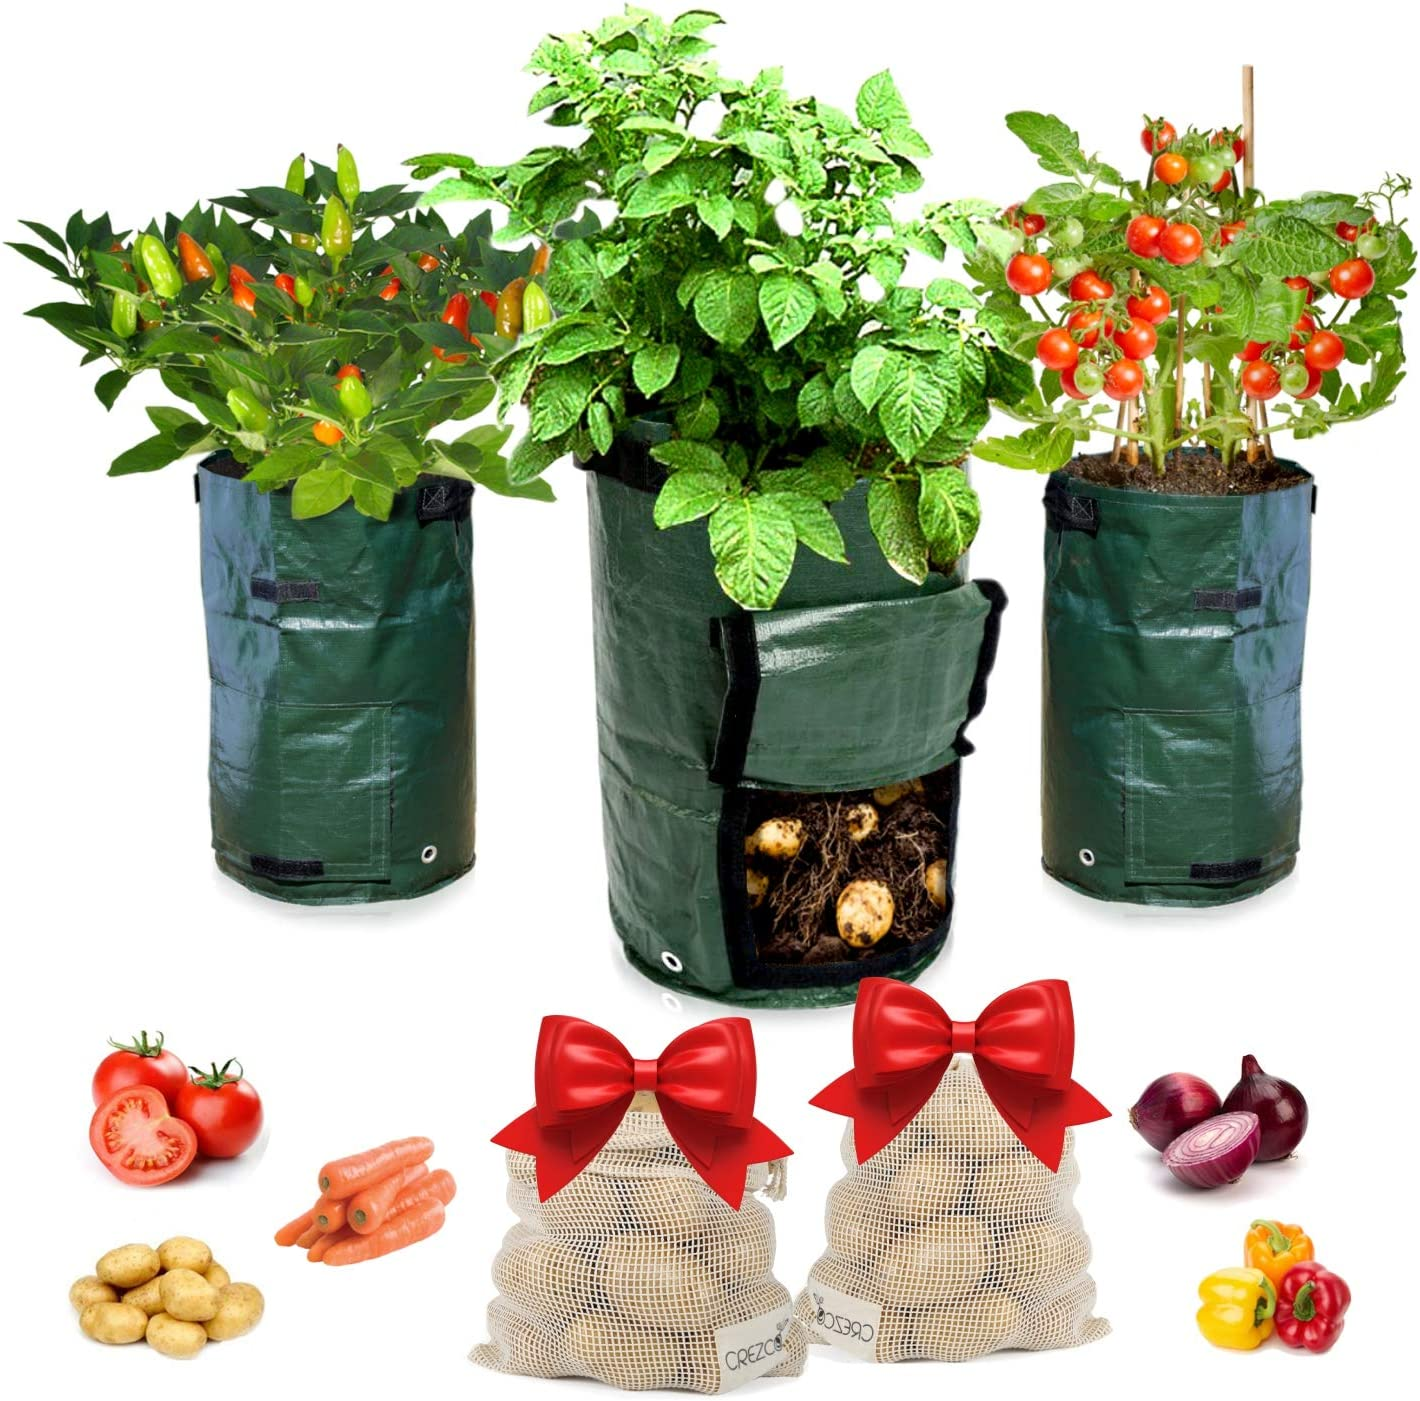 CREZCO 3-Pack 10 Gallons Potato Grow Bags & 2-Pack Gift Eco-Friendly Reusable Washable Mesh Storage Bags, Waterproof, Handles, Access Flap, Vegetable Garden, Planter for Carrots, Onions, Beet, Tomato